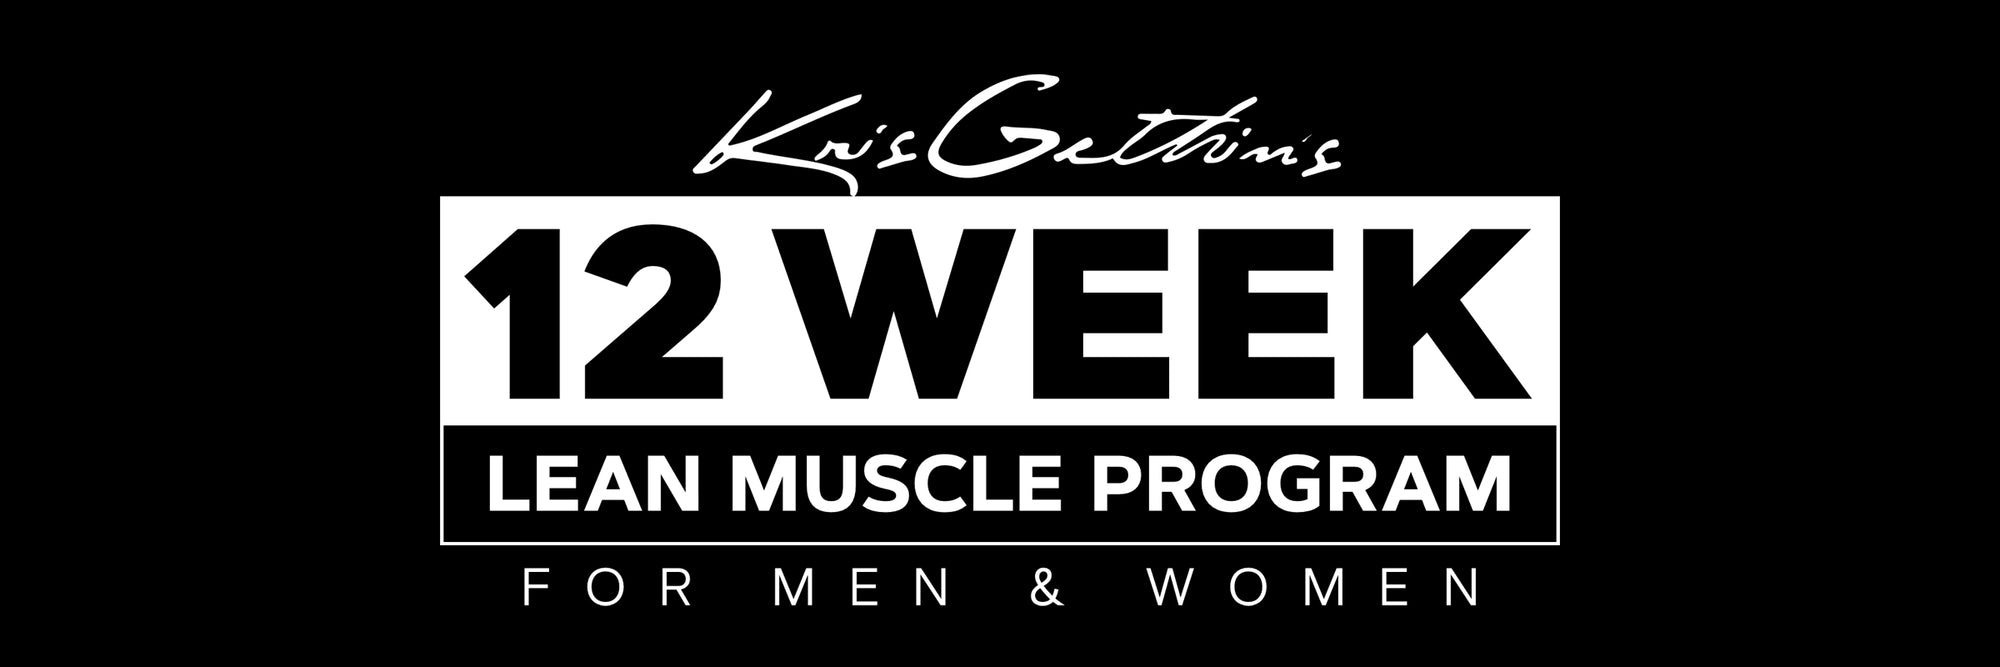 12 Week Lean Muscle Trainer